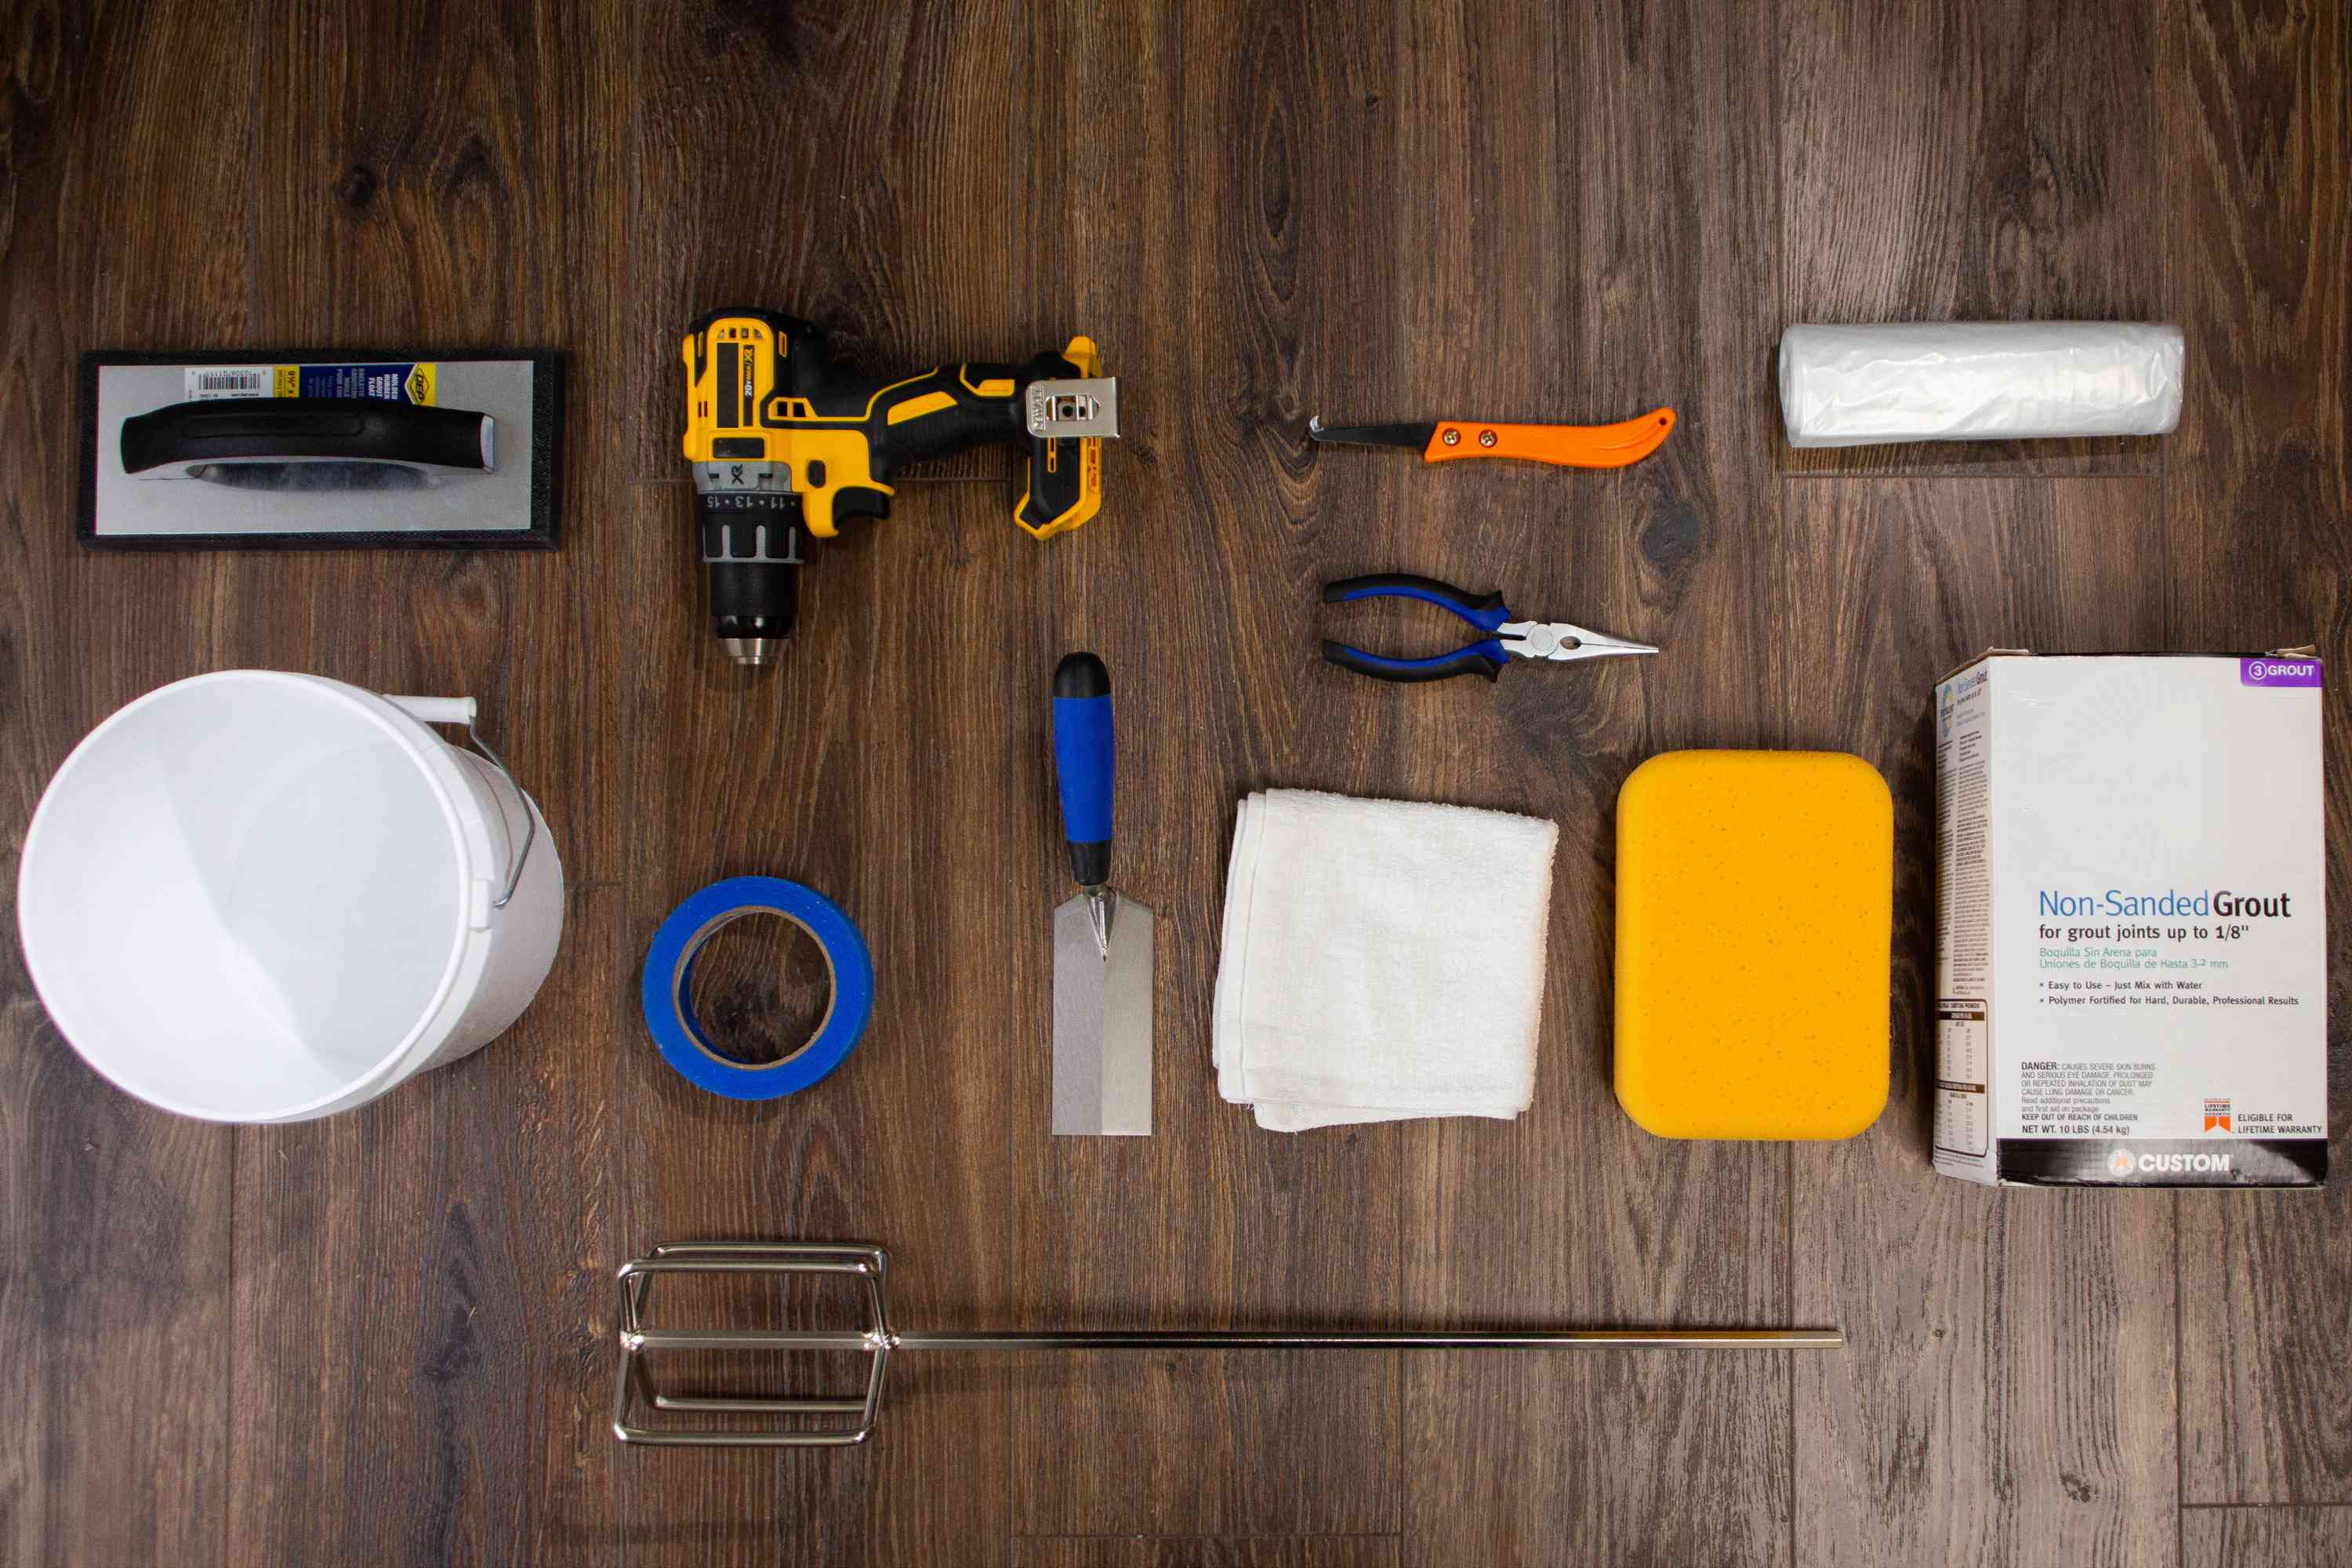 Materials and tools to apply grout to ceramic wall tile on wooden surface